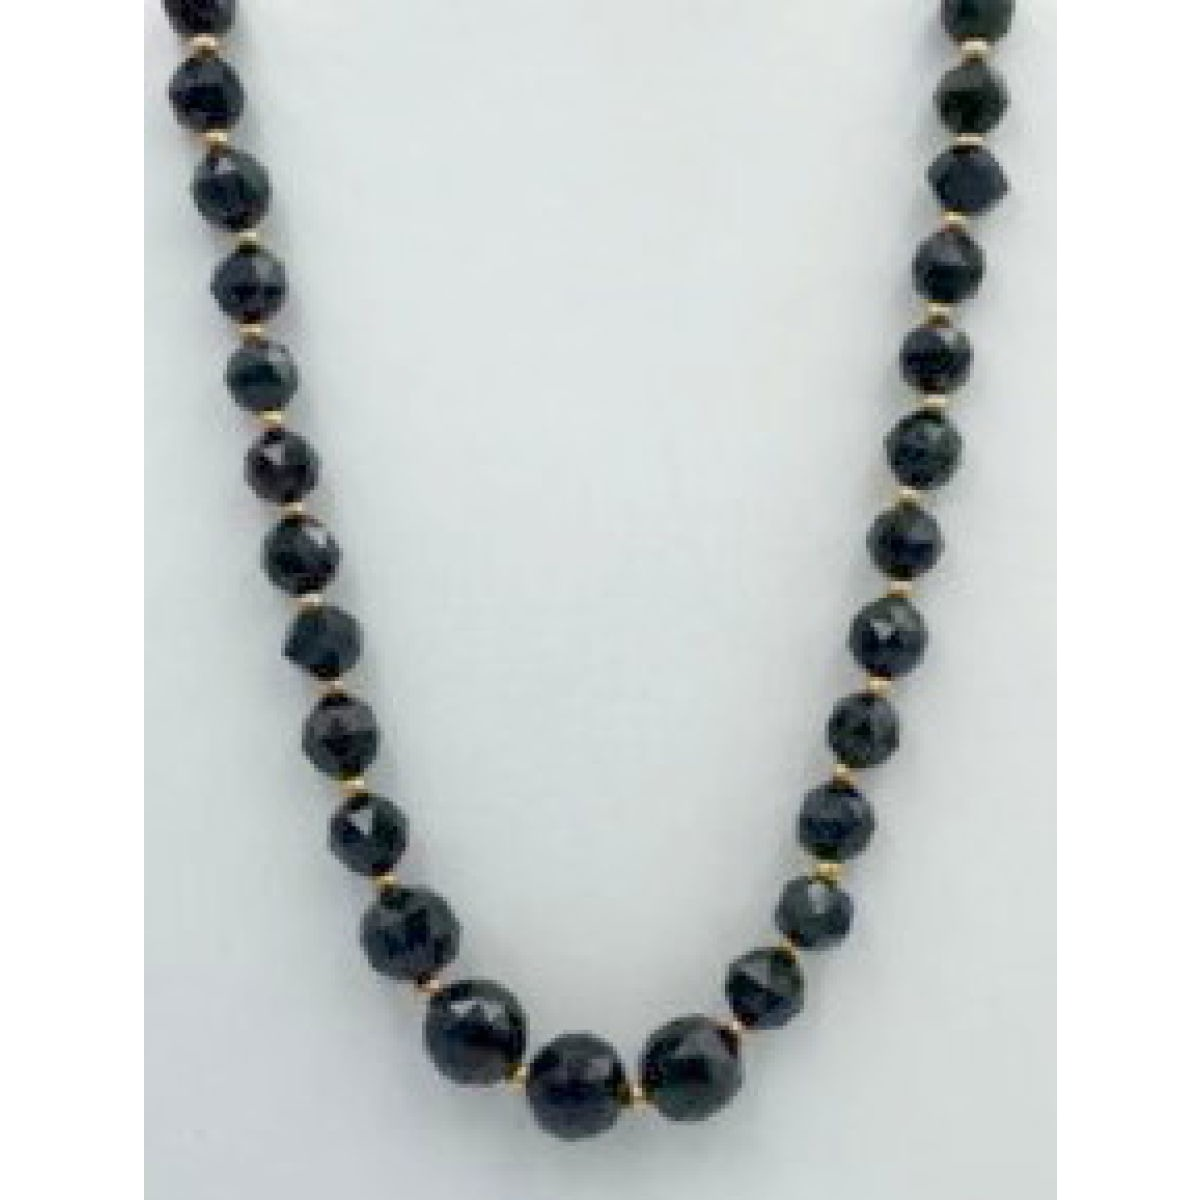 "Lovely Graduated Black Jet 15.5"" Victorian Necklace"